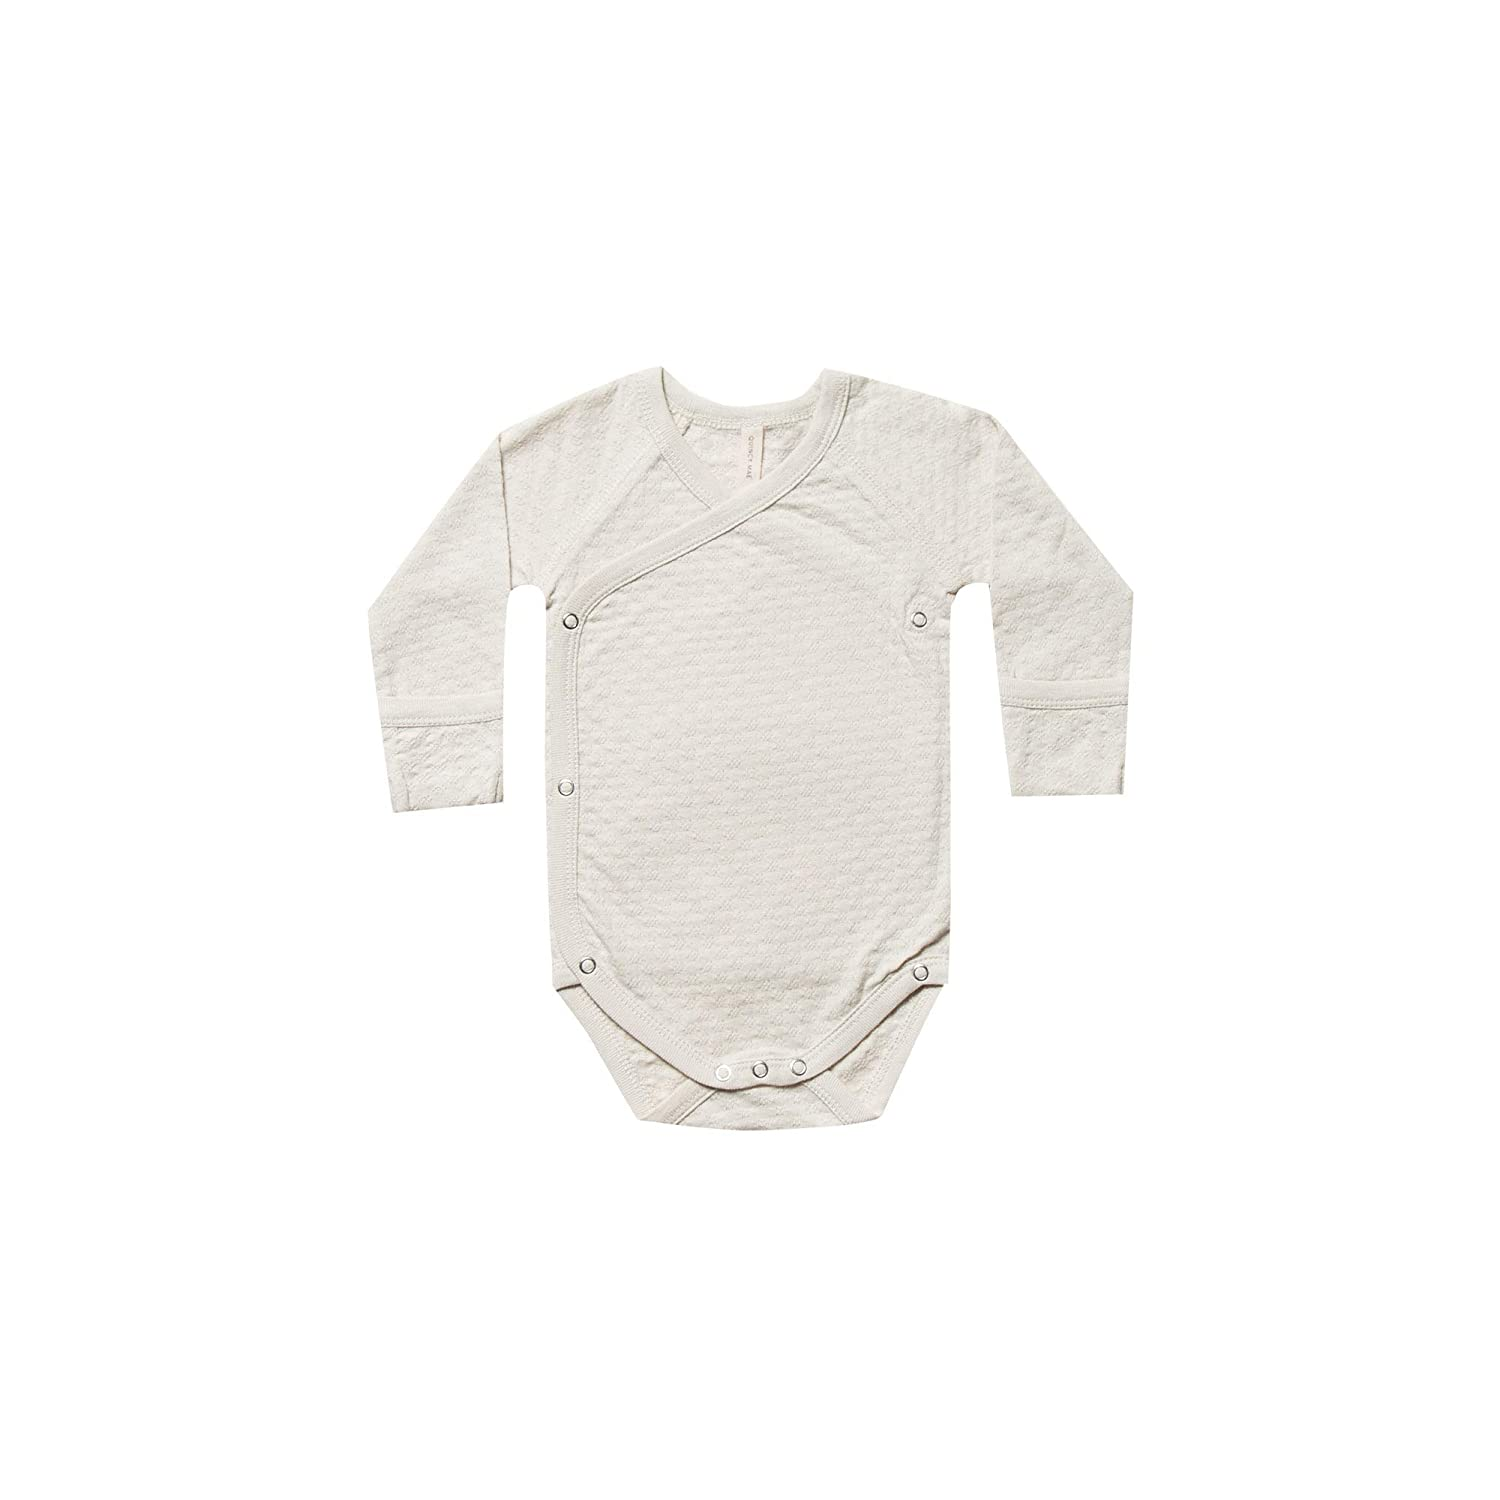 Bodysuits Clothes Onesies Jumpsuits Outfits Black Made in 1977 All Original Parts Baby Pajamas